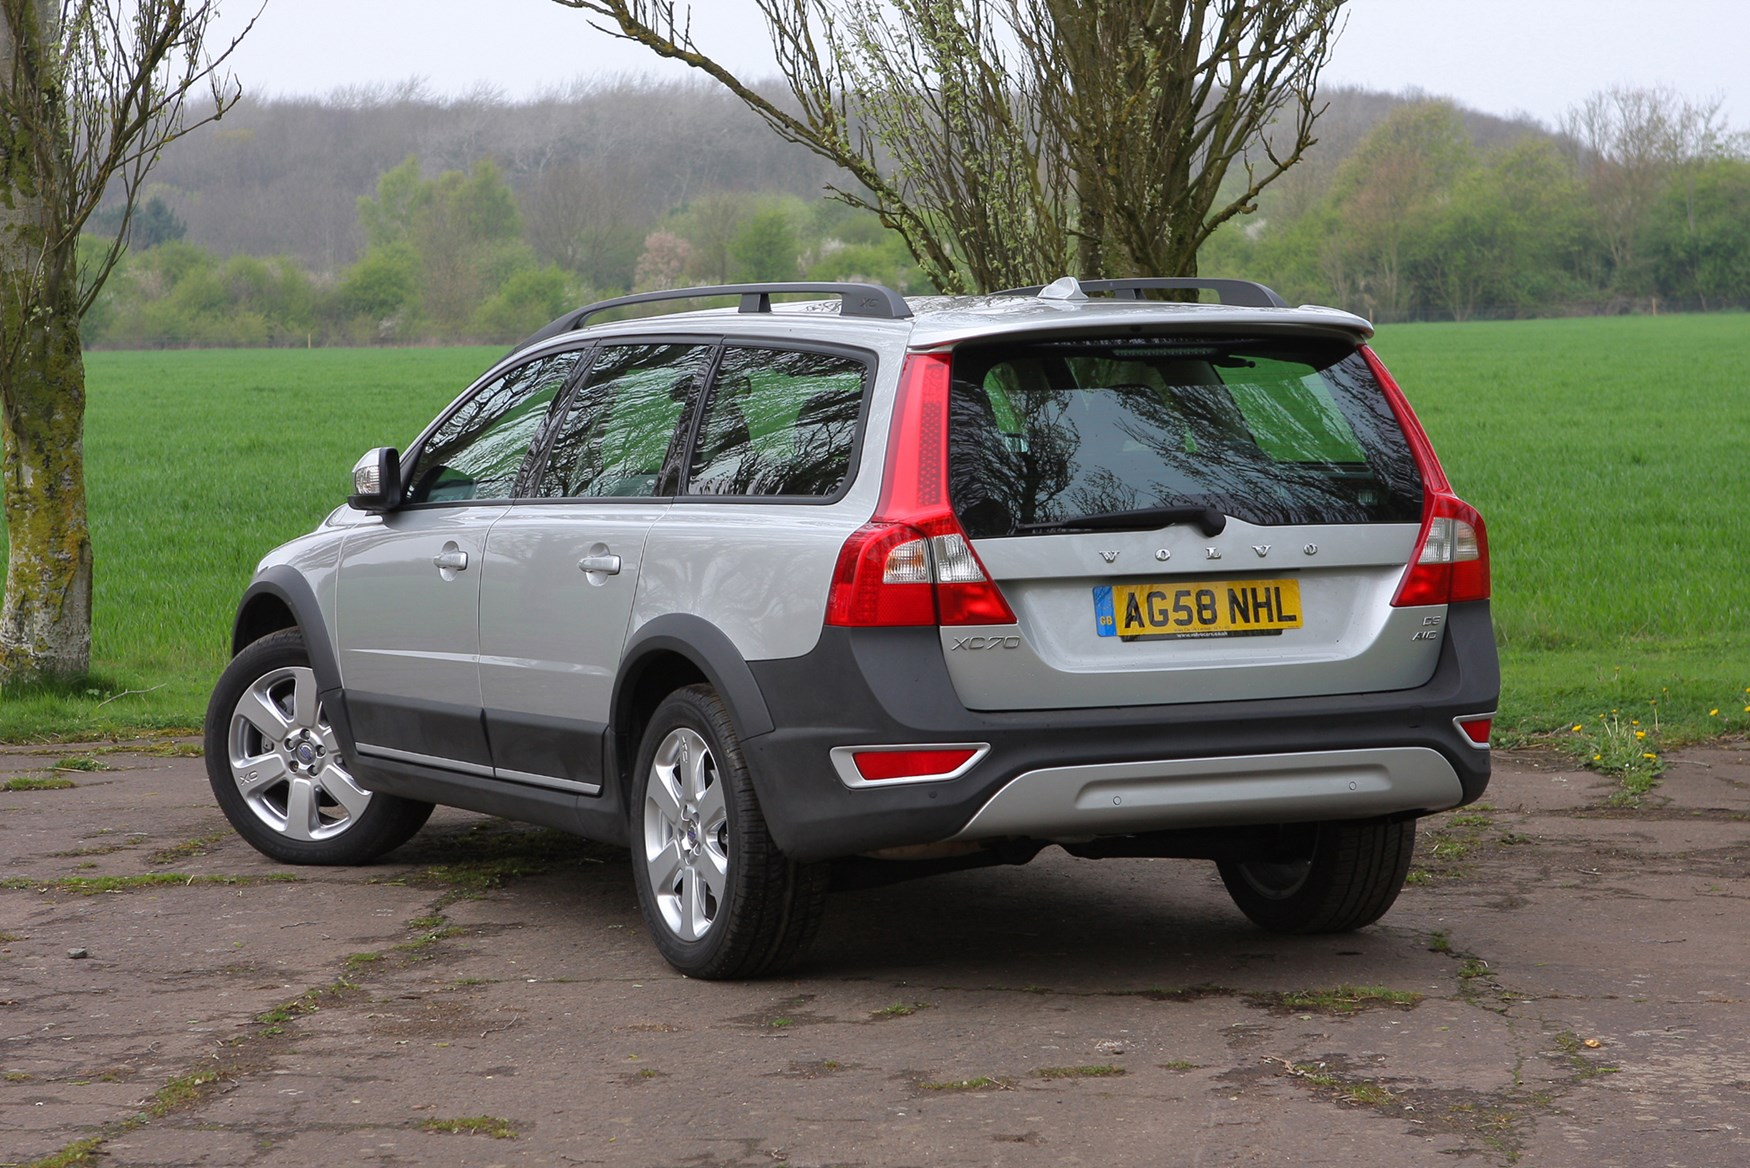 features how estate is equipment much insure safety and to it accessories volvo